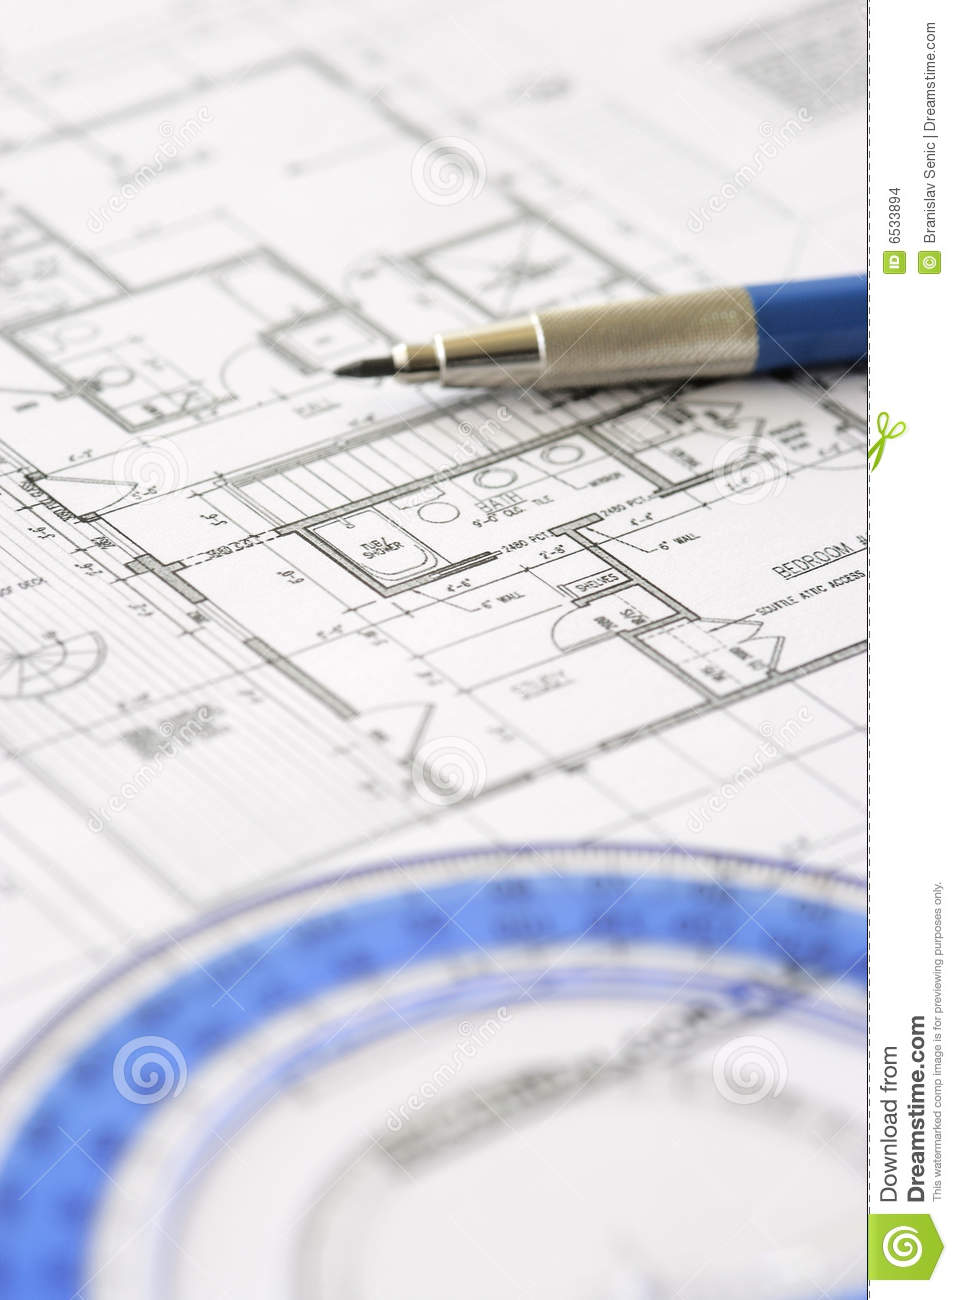 House plan blueprint architect design stock photo for Architecture blueprint